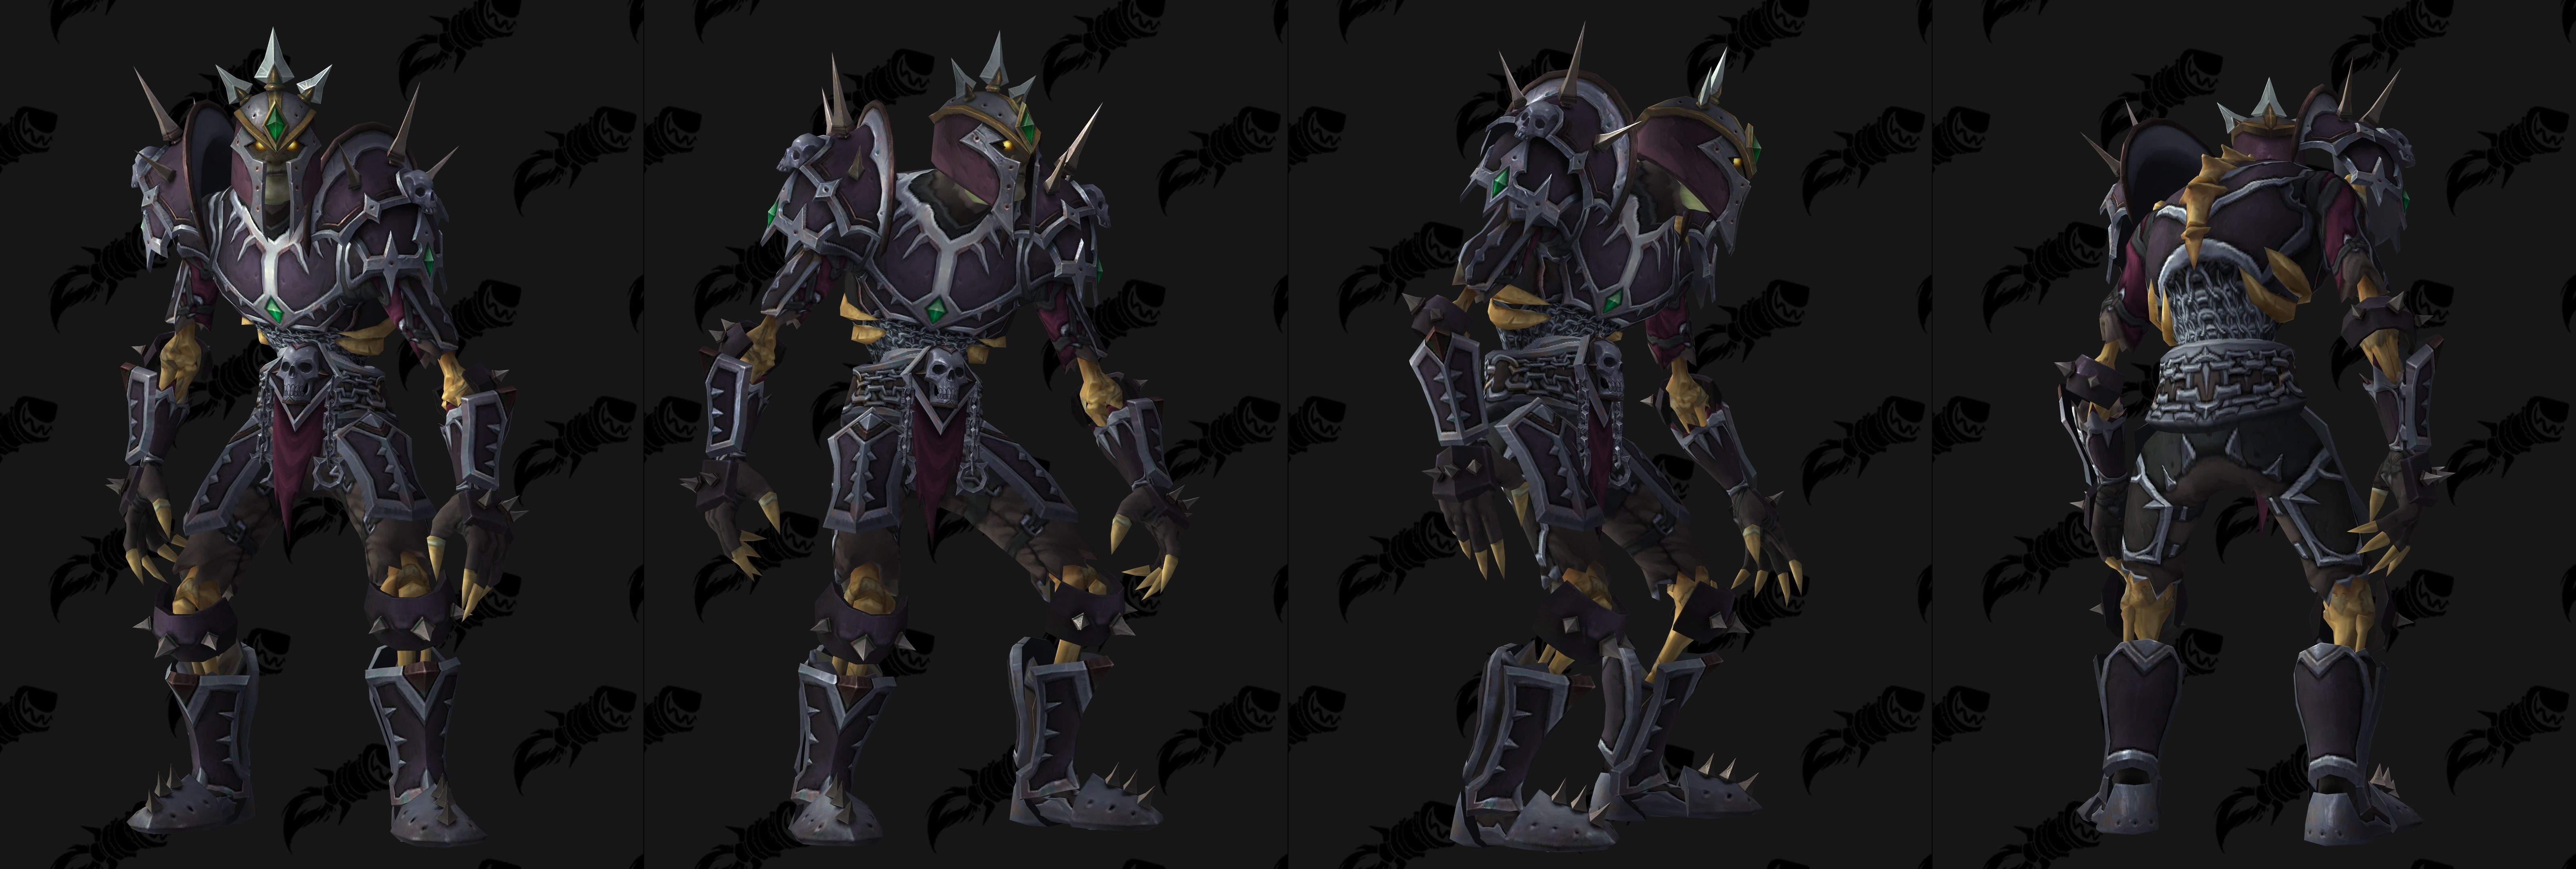 PvP Overview - Battle for Azeroth - Guides - Wowhead